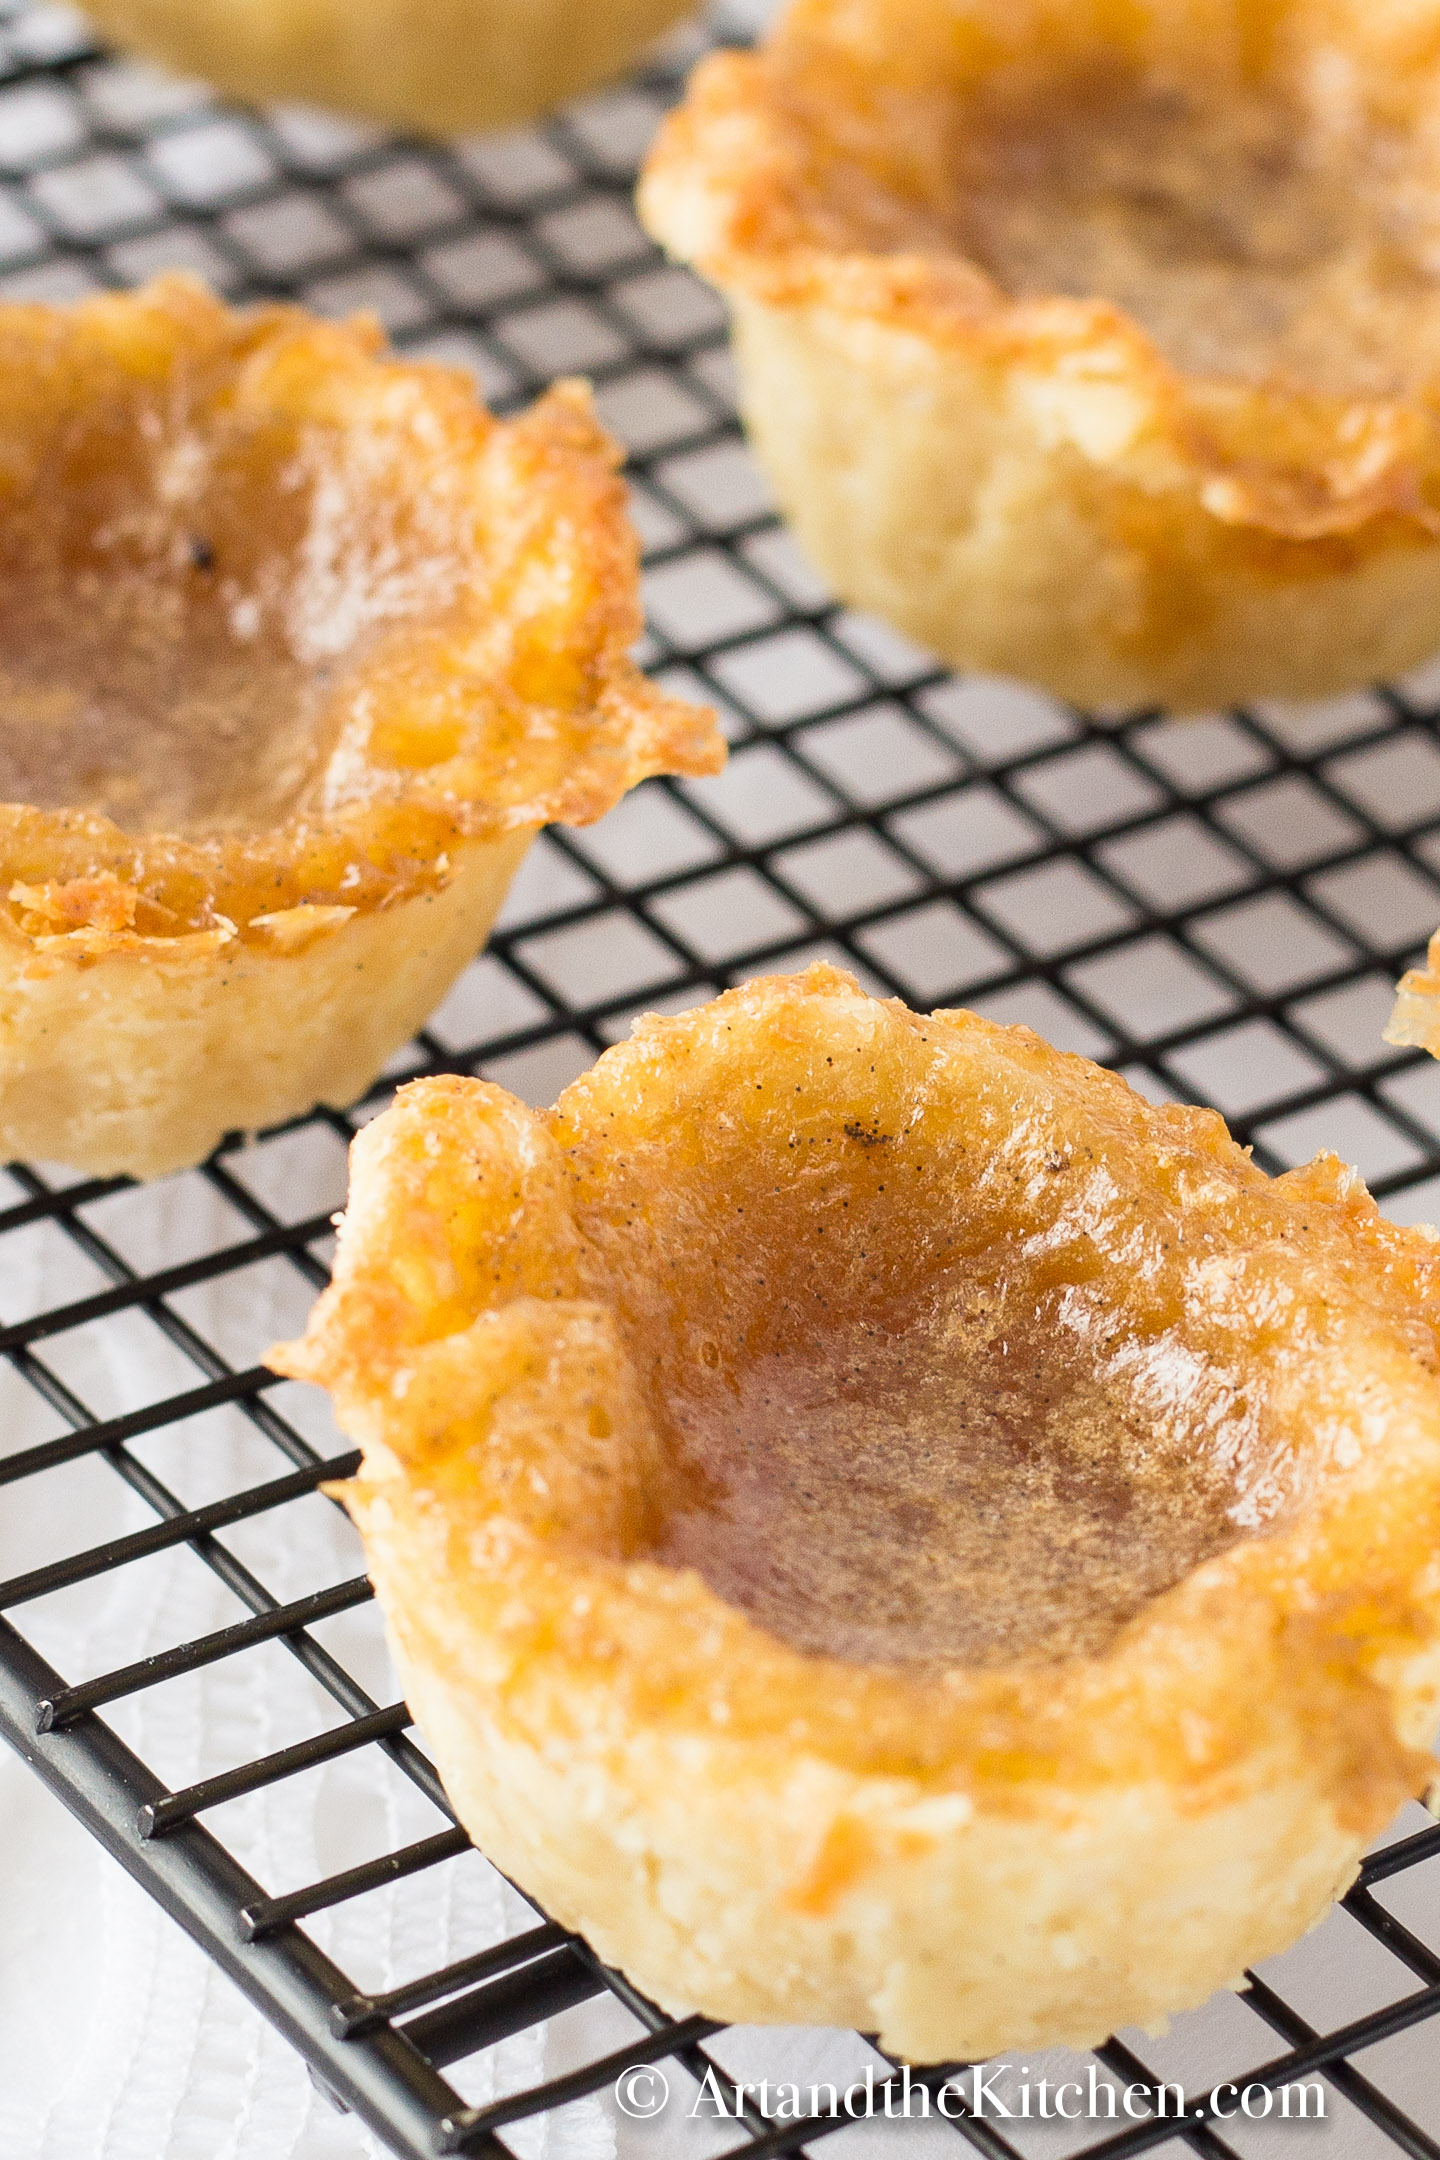 Butter tarts with flaky crust cooling on black wire rack.